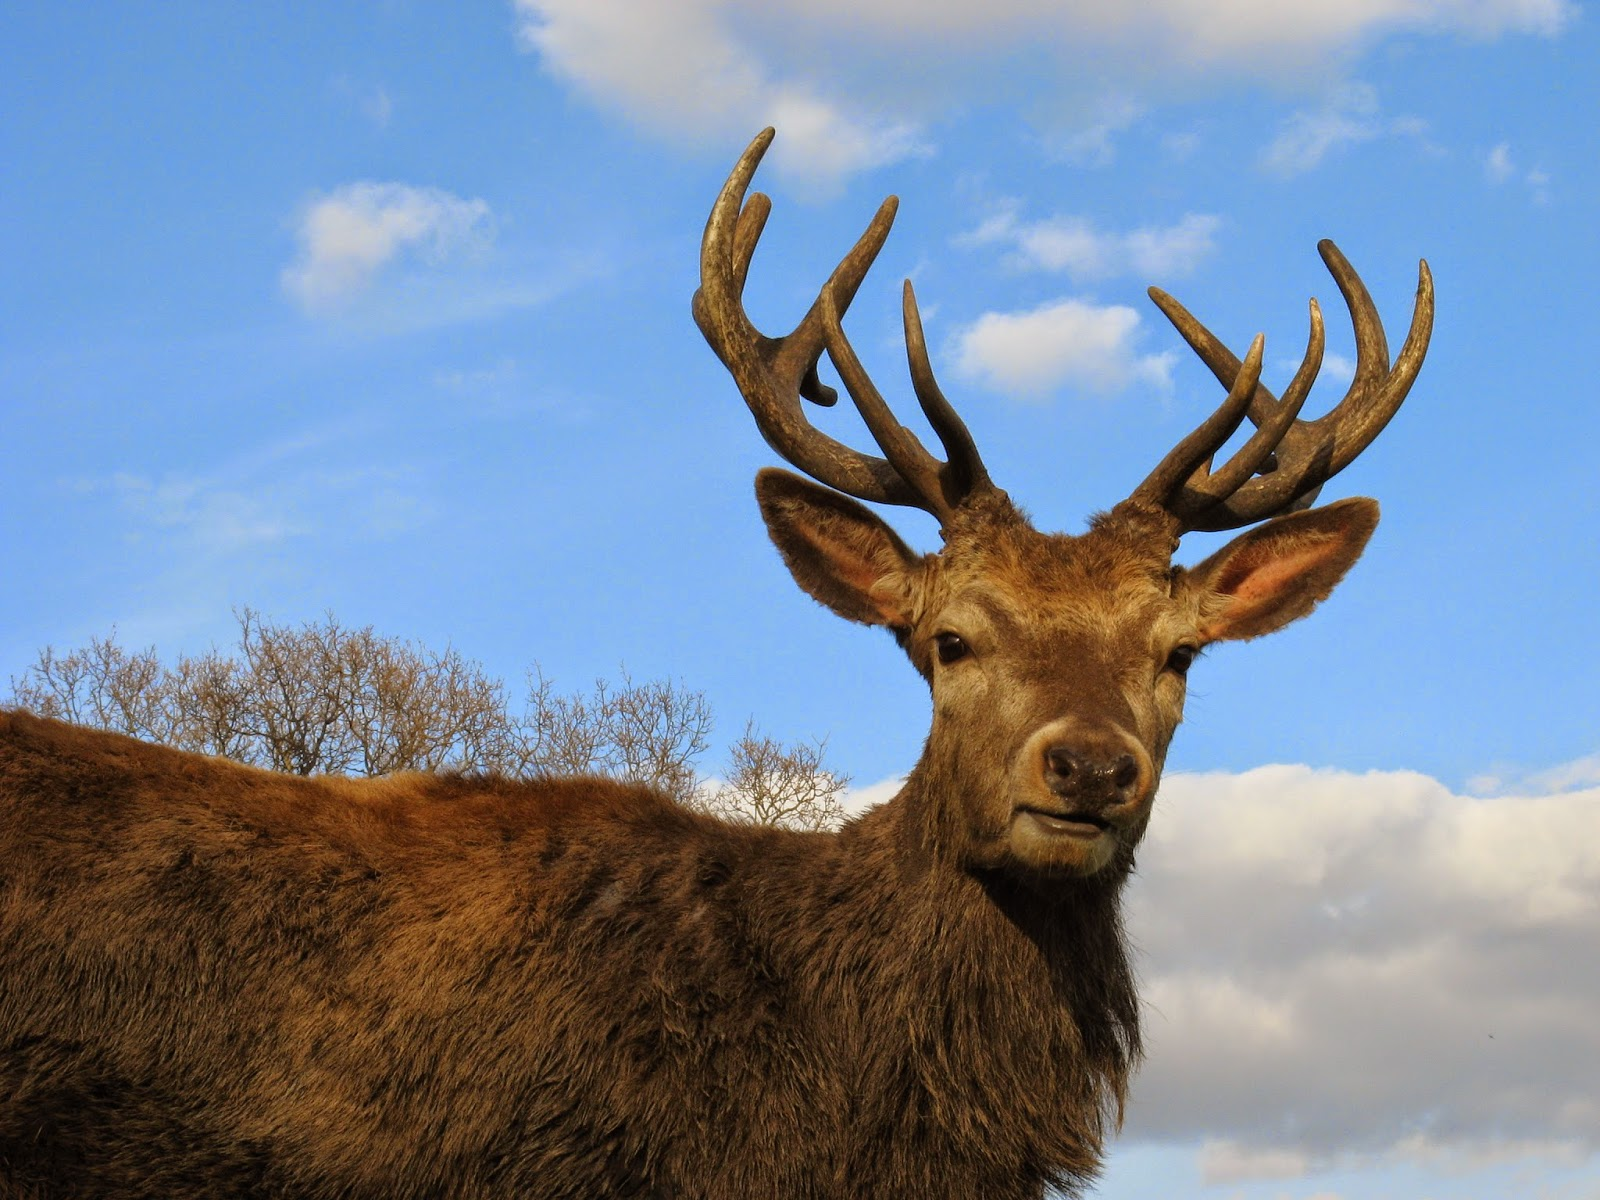 http://zoozon.blogspot.com/2014/12/stag-pictures-gallery-8.html